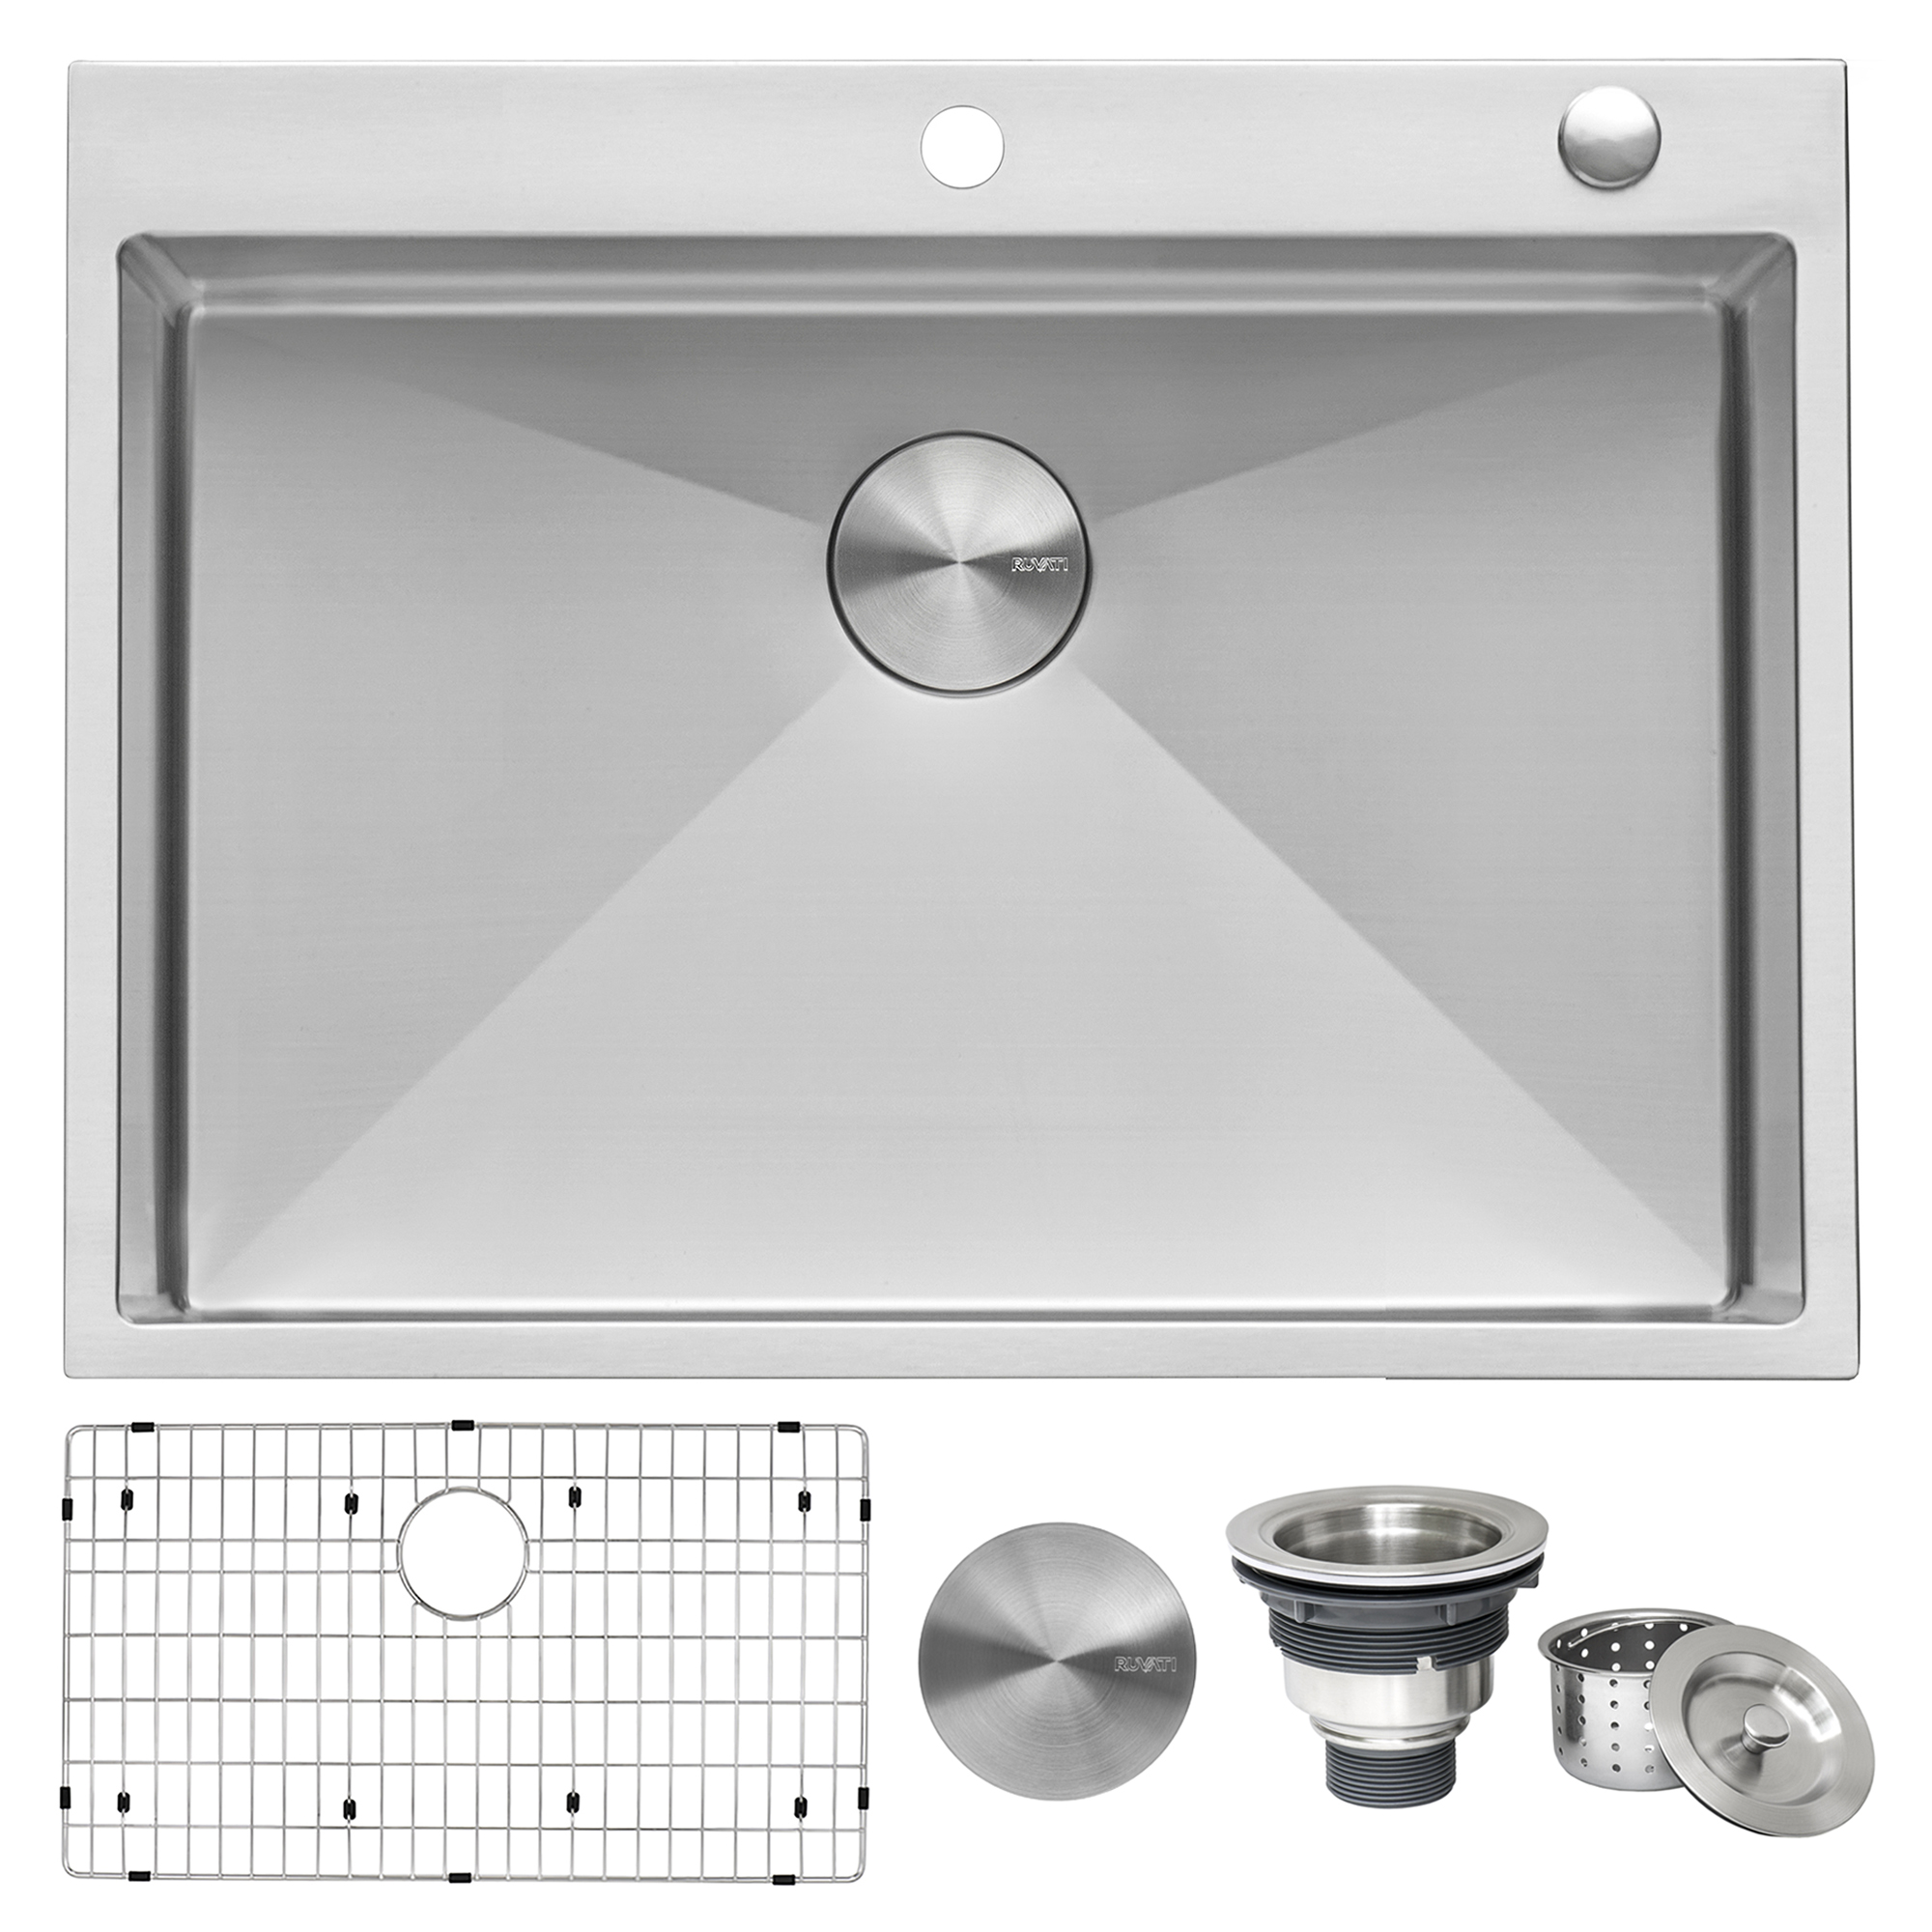 30 X 22 Inch Drop In Tight Radius Topmount 16 Gauge Stainless Steel Kitchen Sink Single Bowl Ruvati Usa